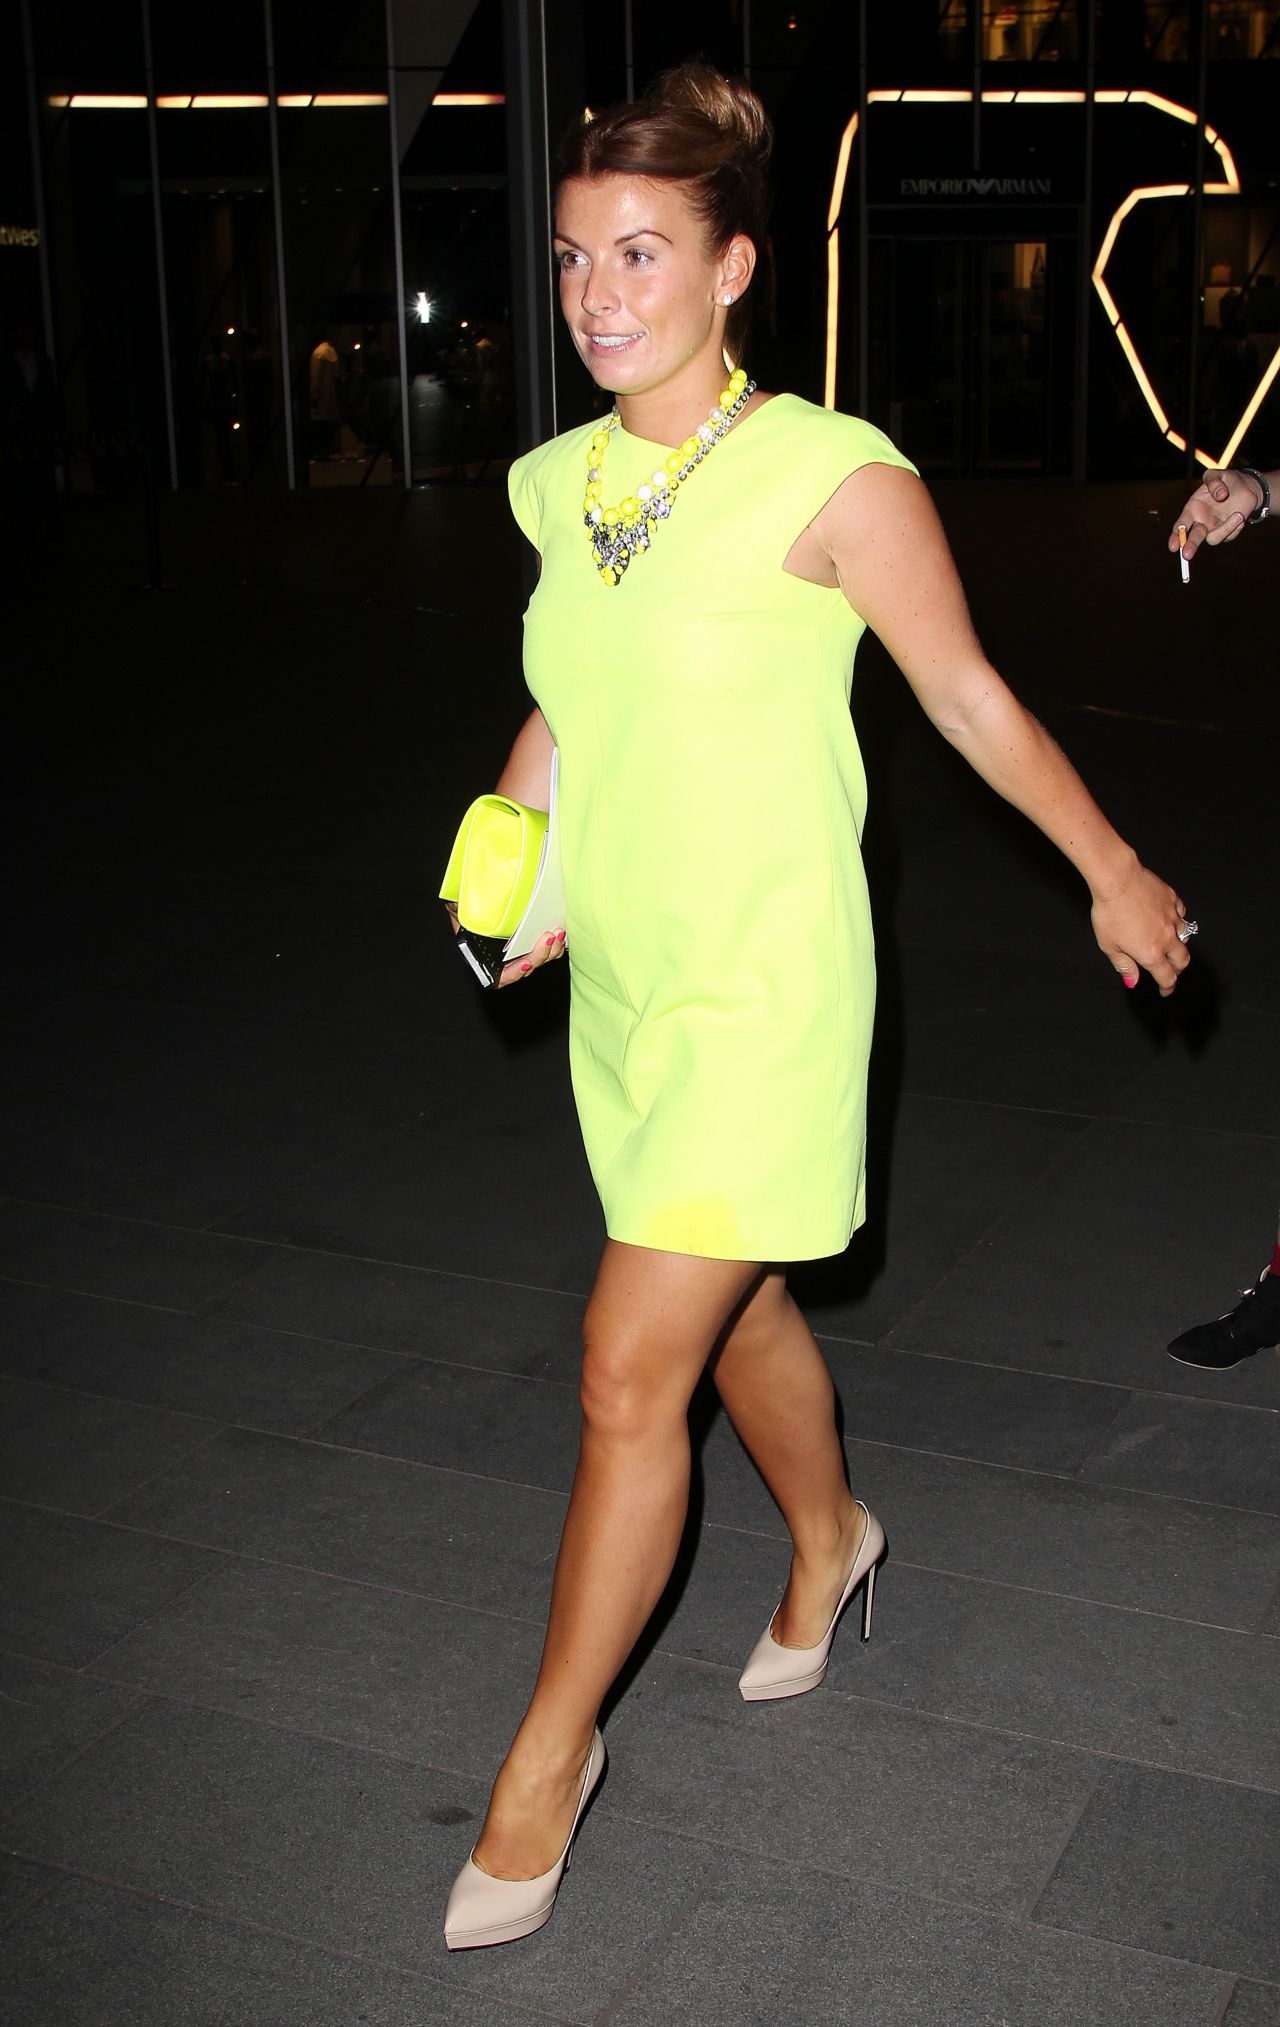 Coleen Rooney Night Out Style - Australasia Bar, June 2014